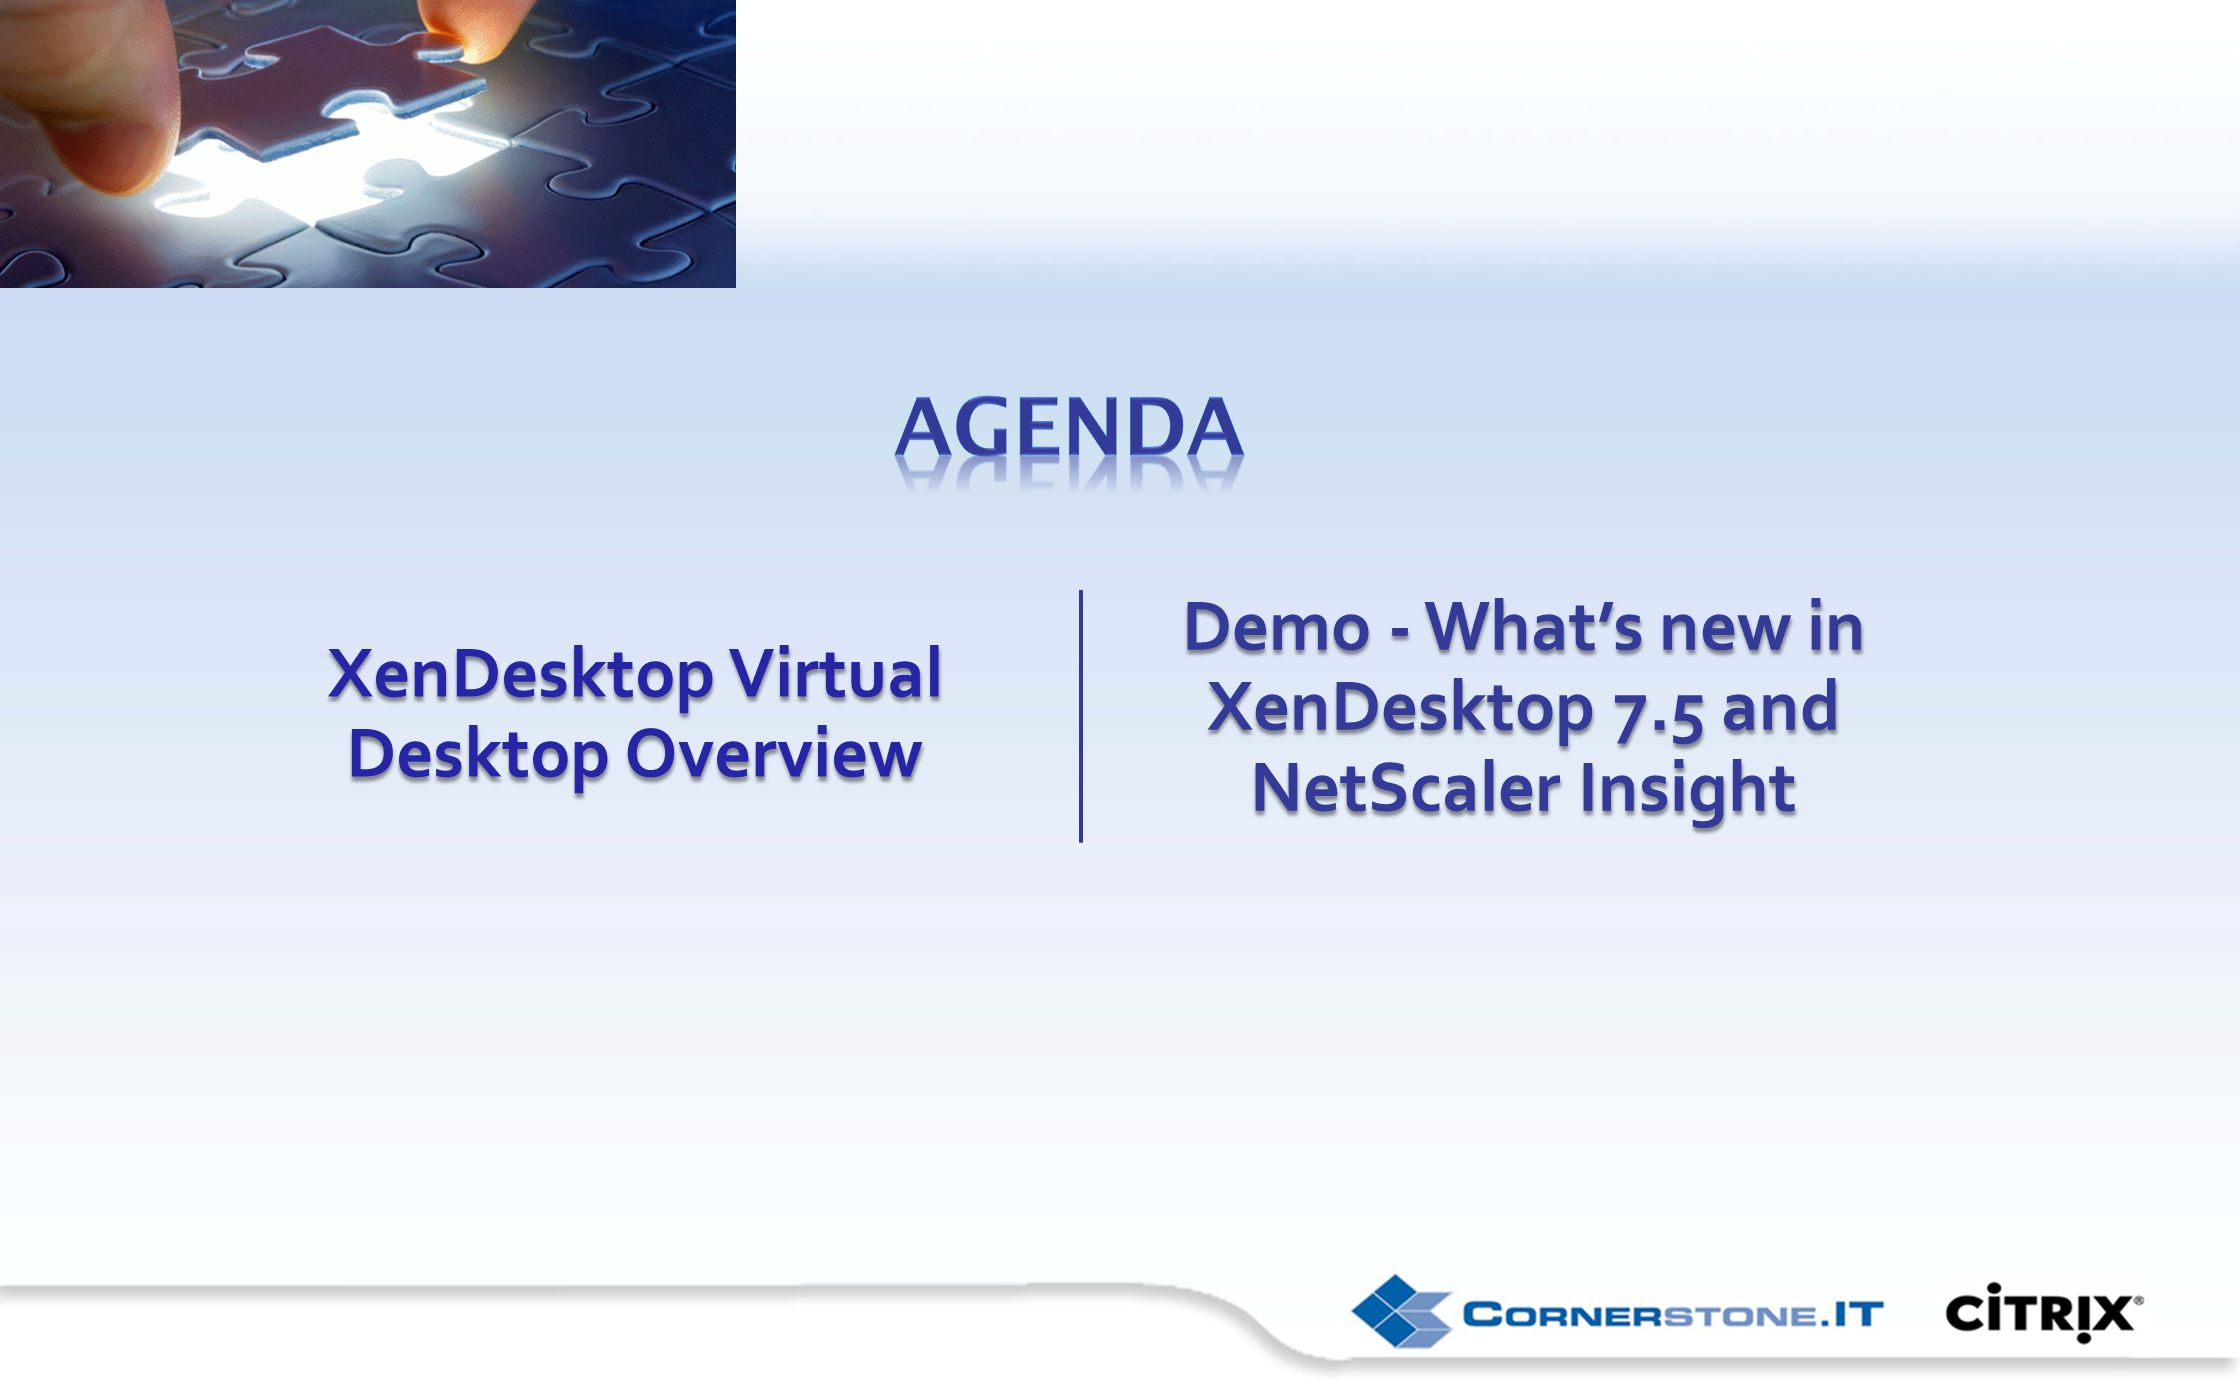 XenDesktop Virtual Desktop Overview Demo - What's new in XenDesktop 7.5 and NetScaler Insight